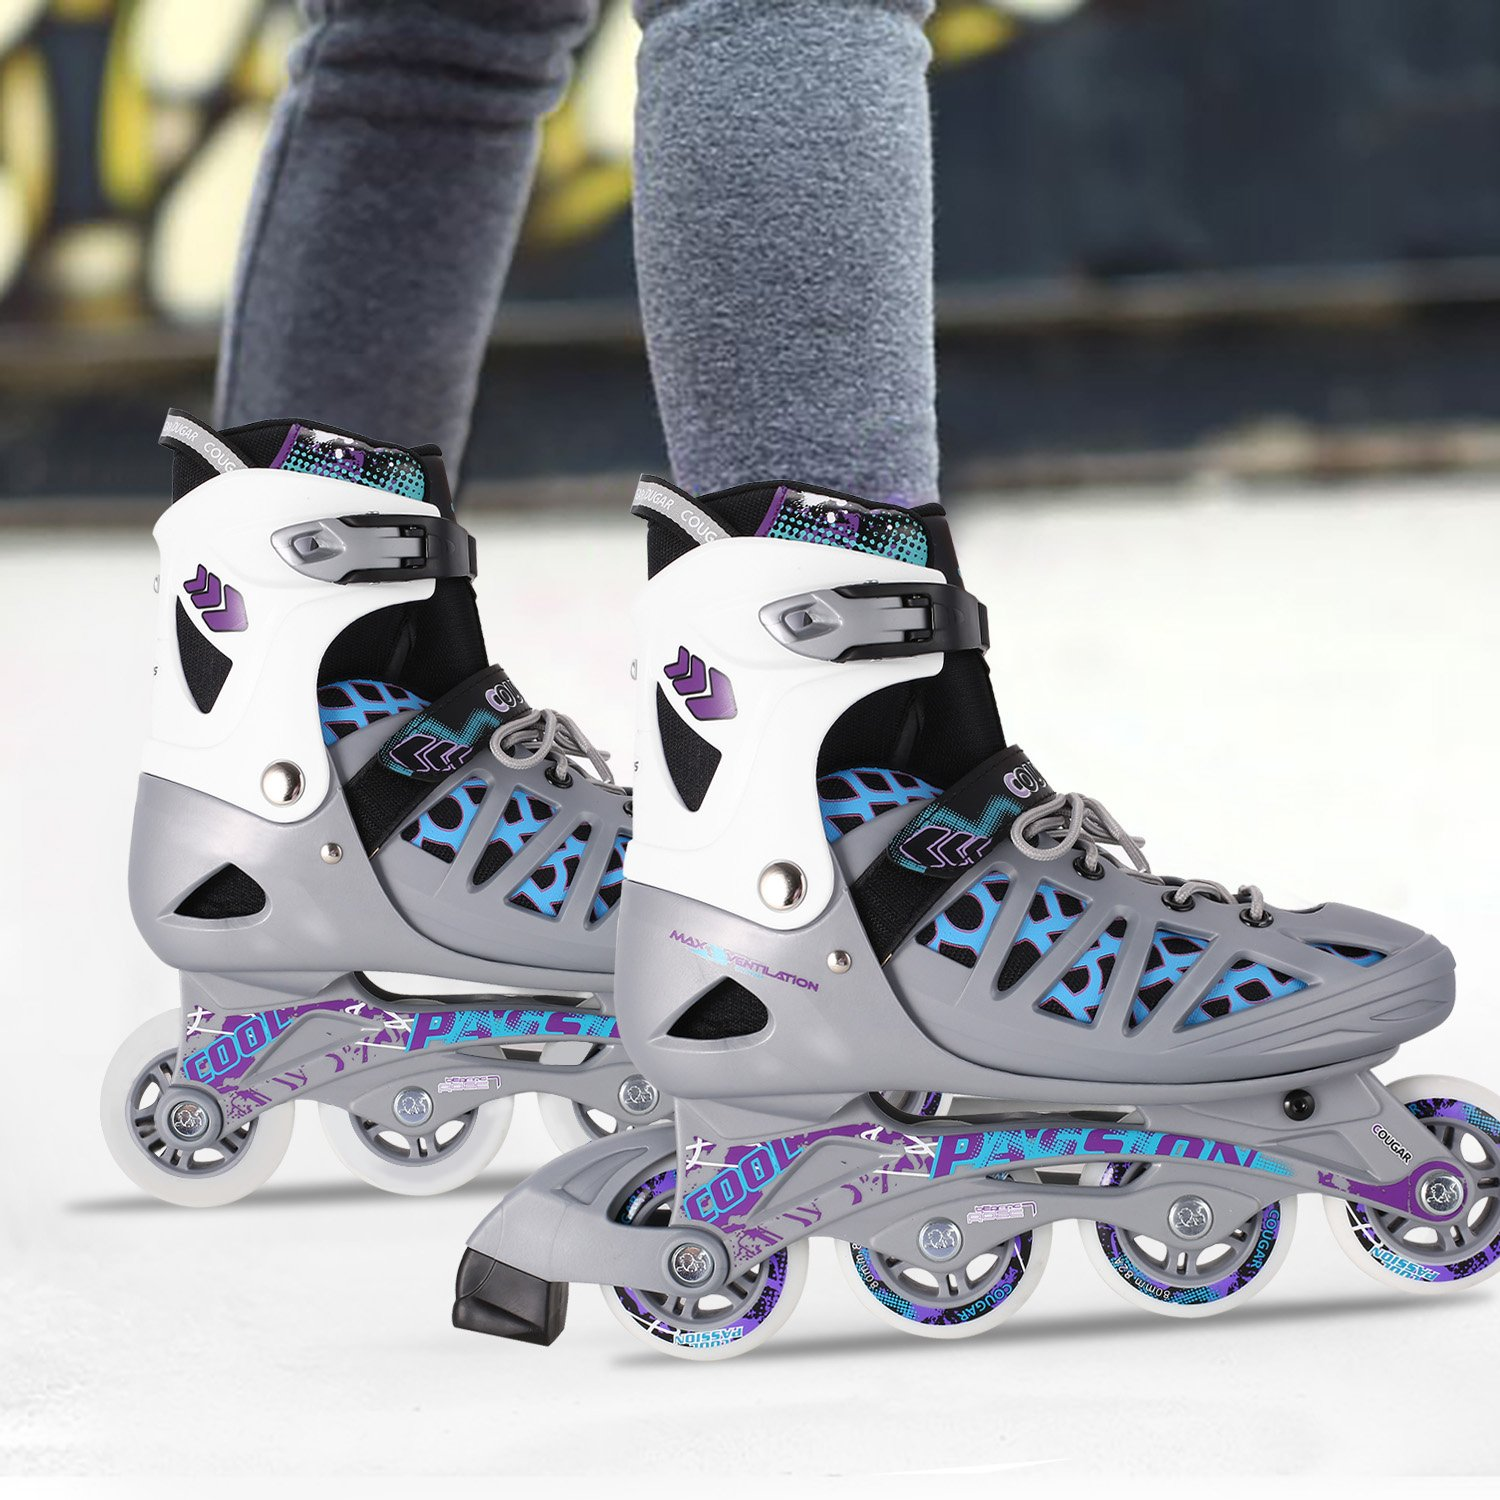 Anfan Adjustable Inline Skates for Adult/Teen, Comfortable Roller Shoes Outdoors, Safe and Durable Training Rollerblades (US STOCK) (Silver, 4-7)